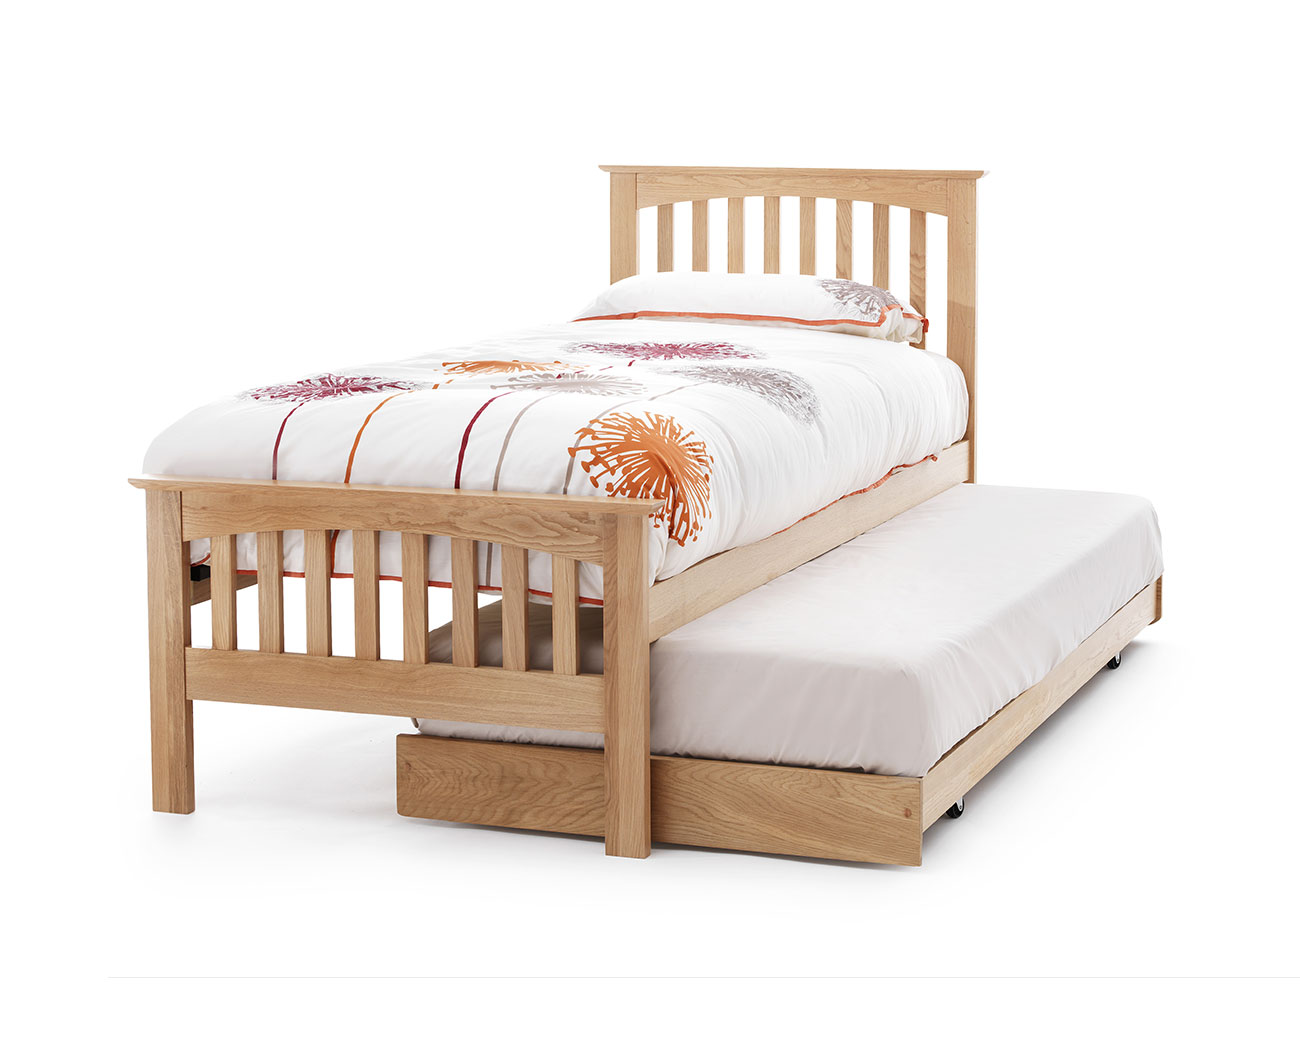 main_image_guestbed